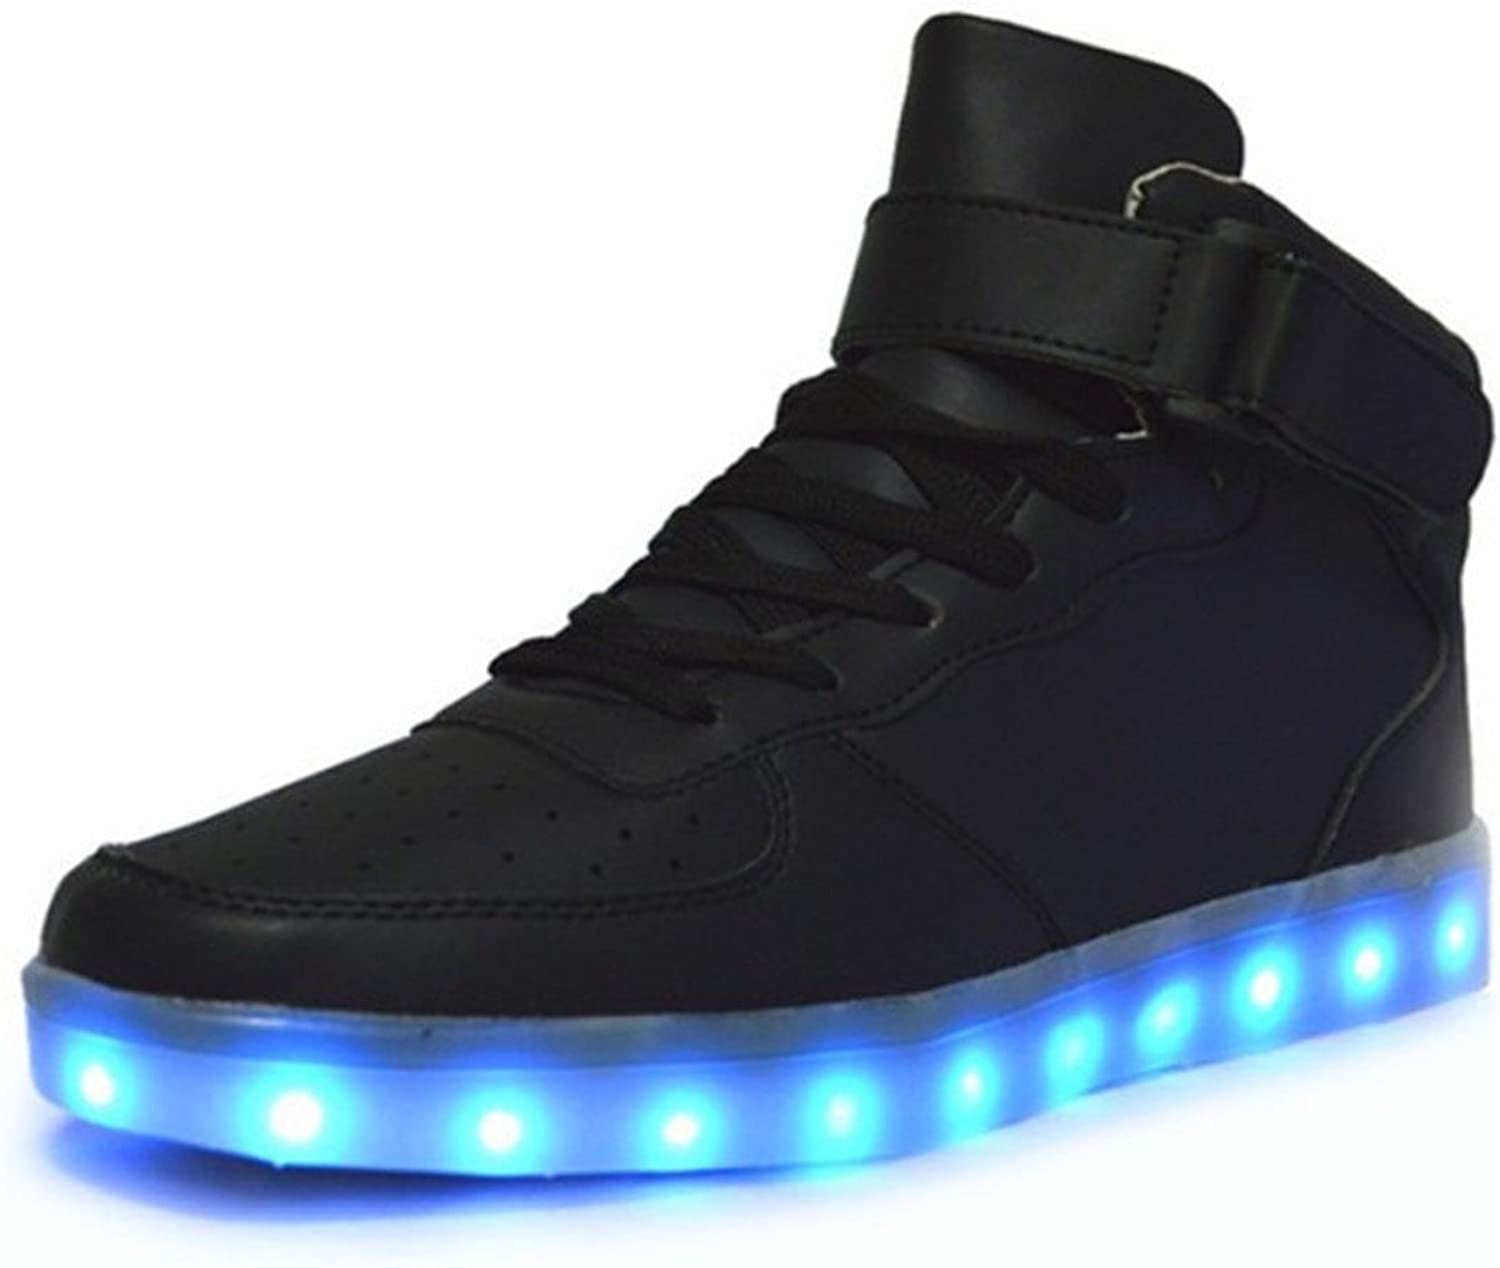 FLASHY'S Unisex LED shoes,USB Charging Flashing Snickers,Light up and Glow in The Dark